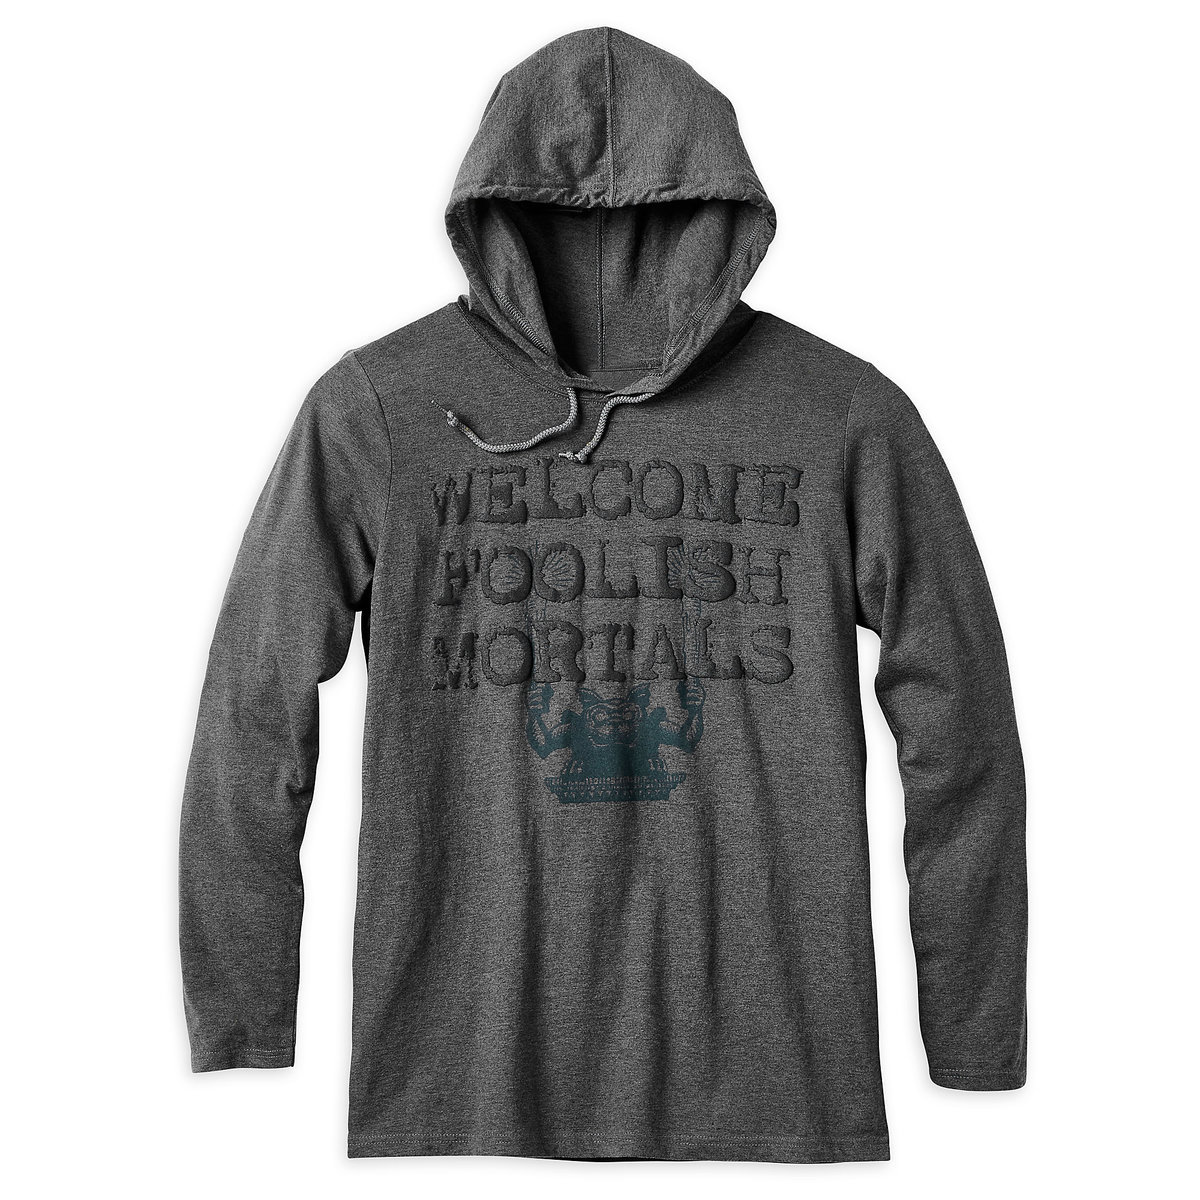 a0b8b788 Product Image of The Haunted Mansion Hooded T-Shirt for Adults # 1